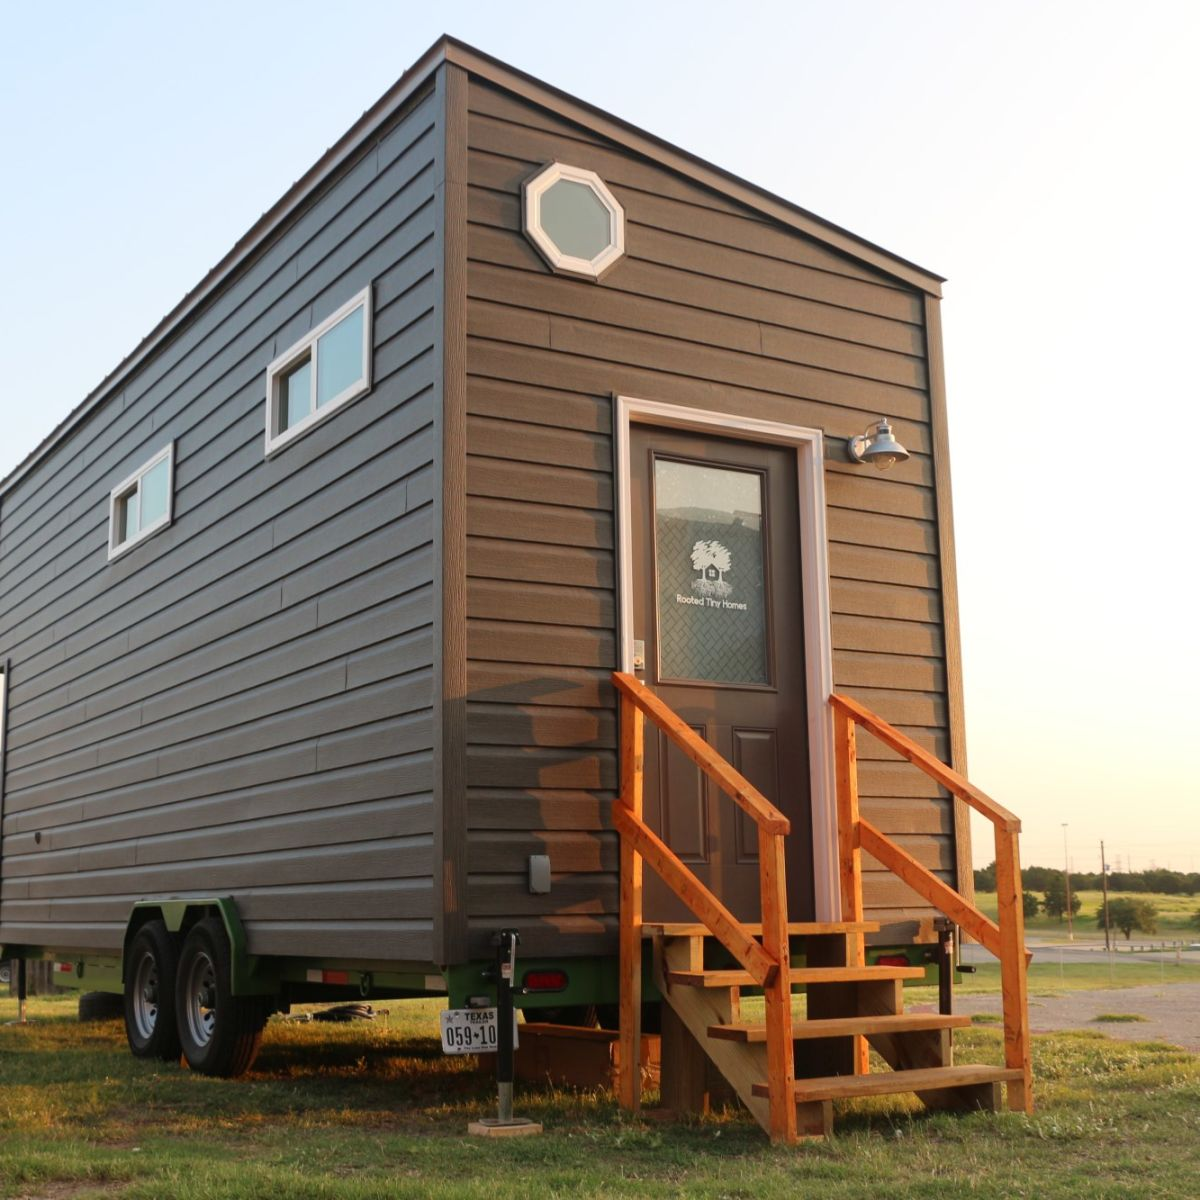 Astounding Tiny Houses For Sale In Houston Tiny Houses For Sale Rent Home Interior And Landscaping Synyenasavecom